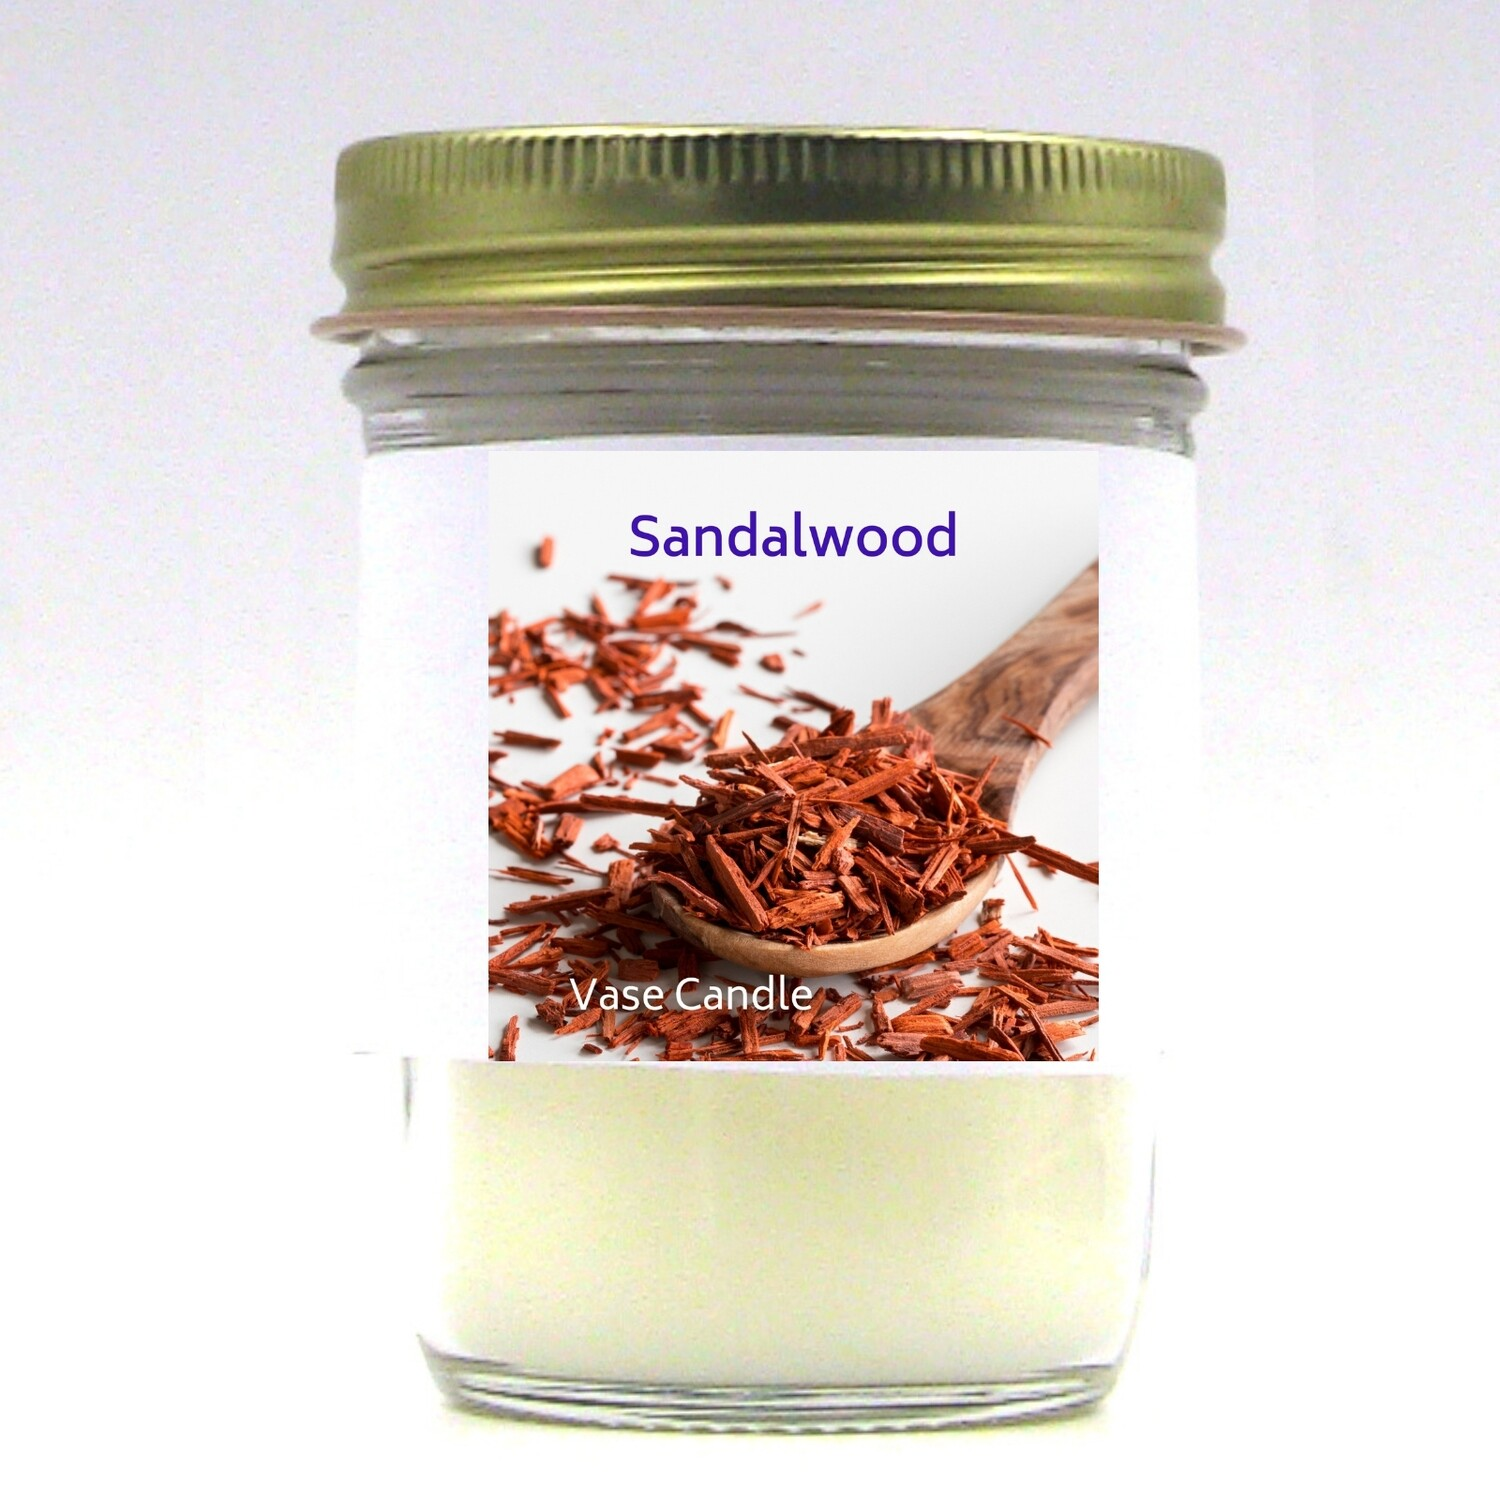 Sandalwood Vase Candle Jar